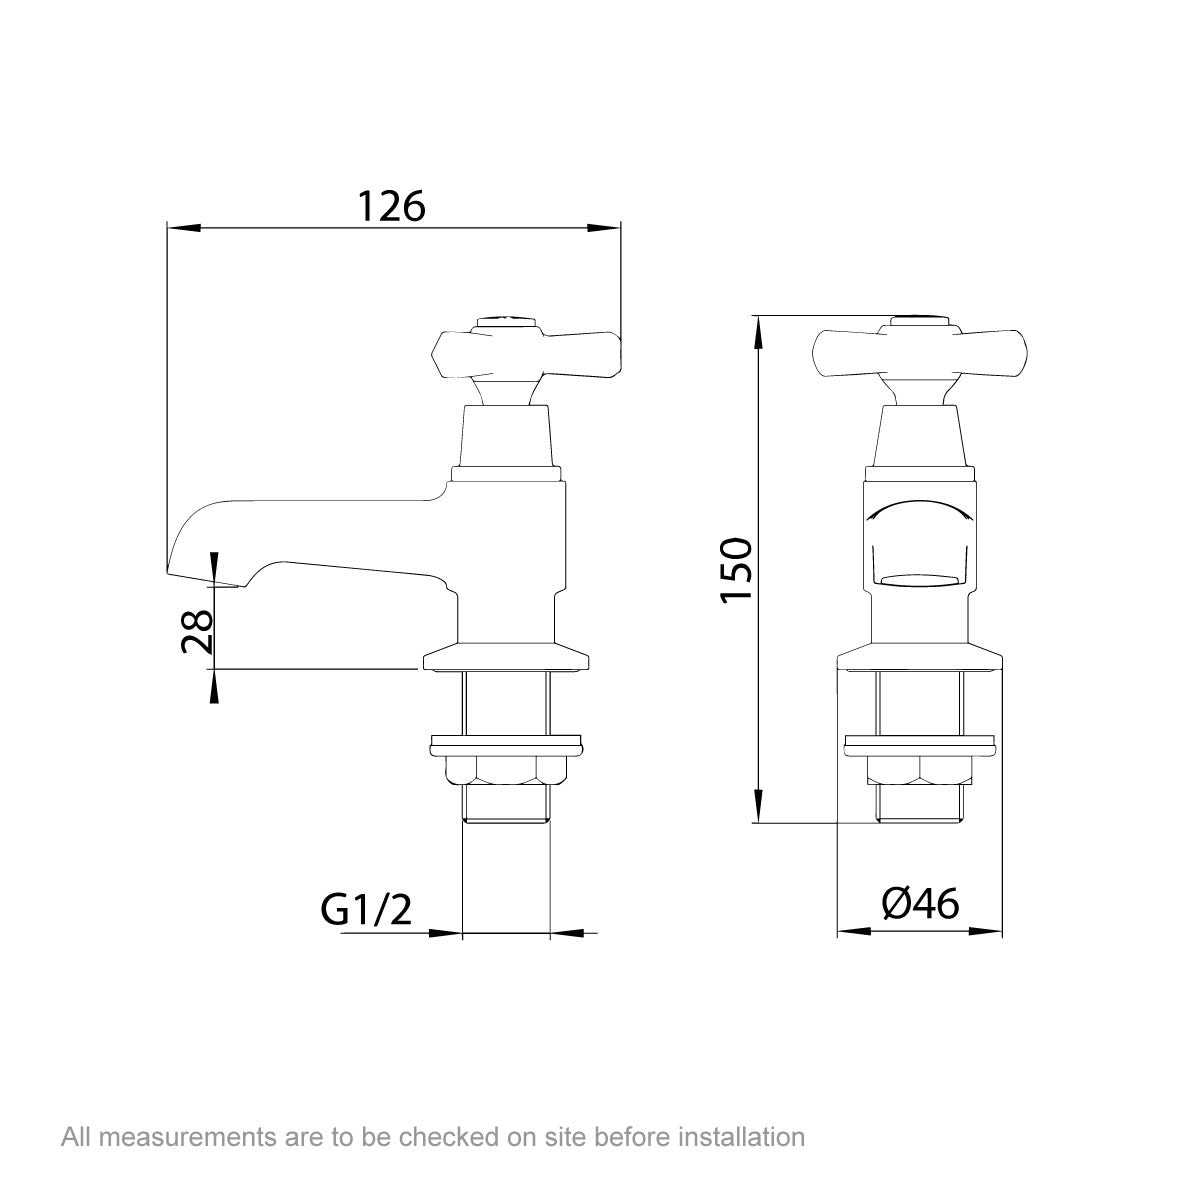 Dimensions for The Bath Co. Beaumont basin pillar taps